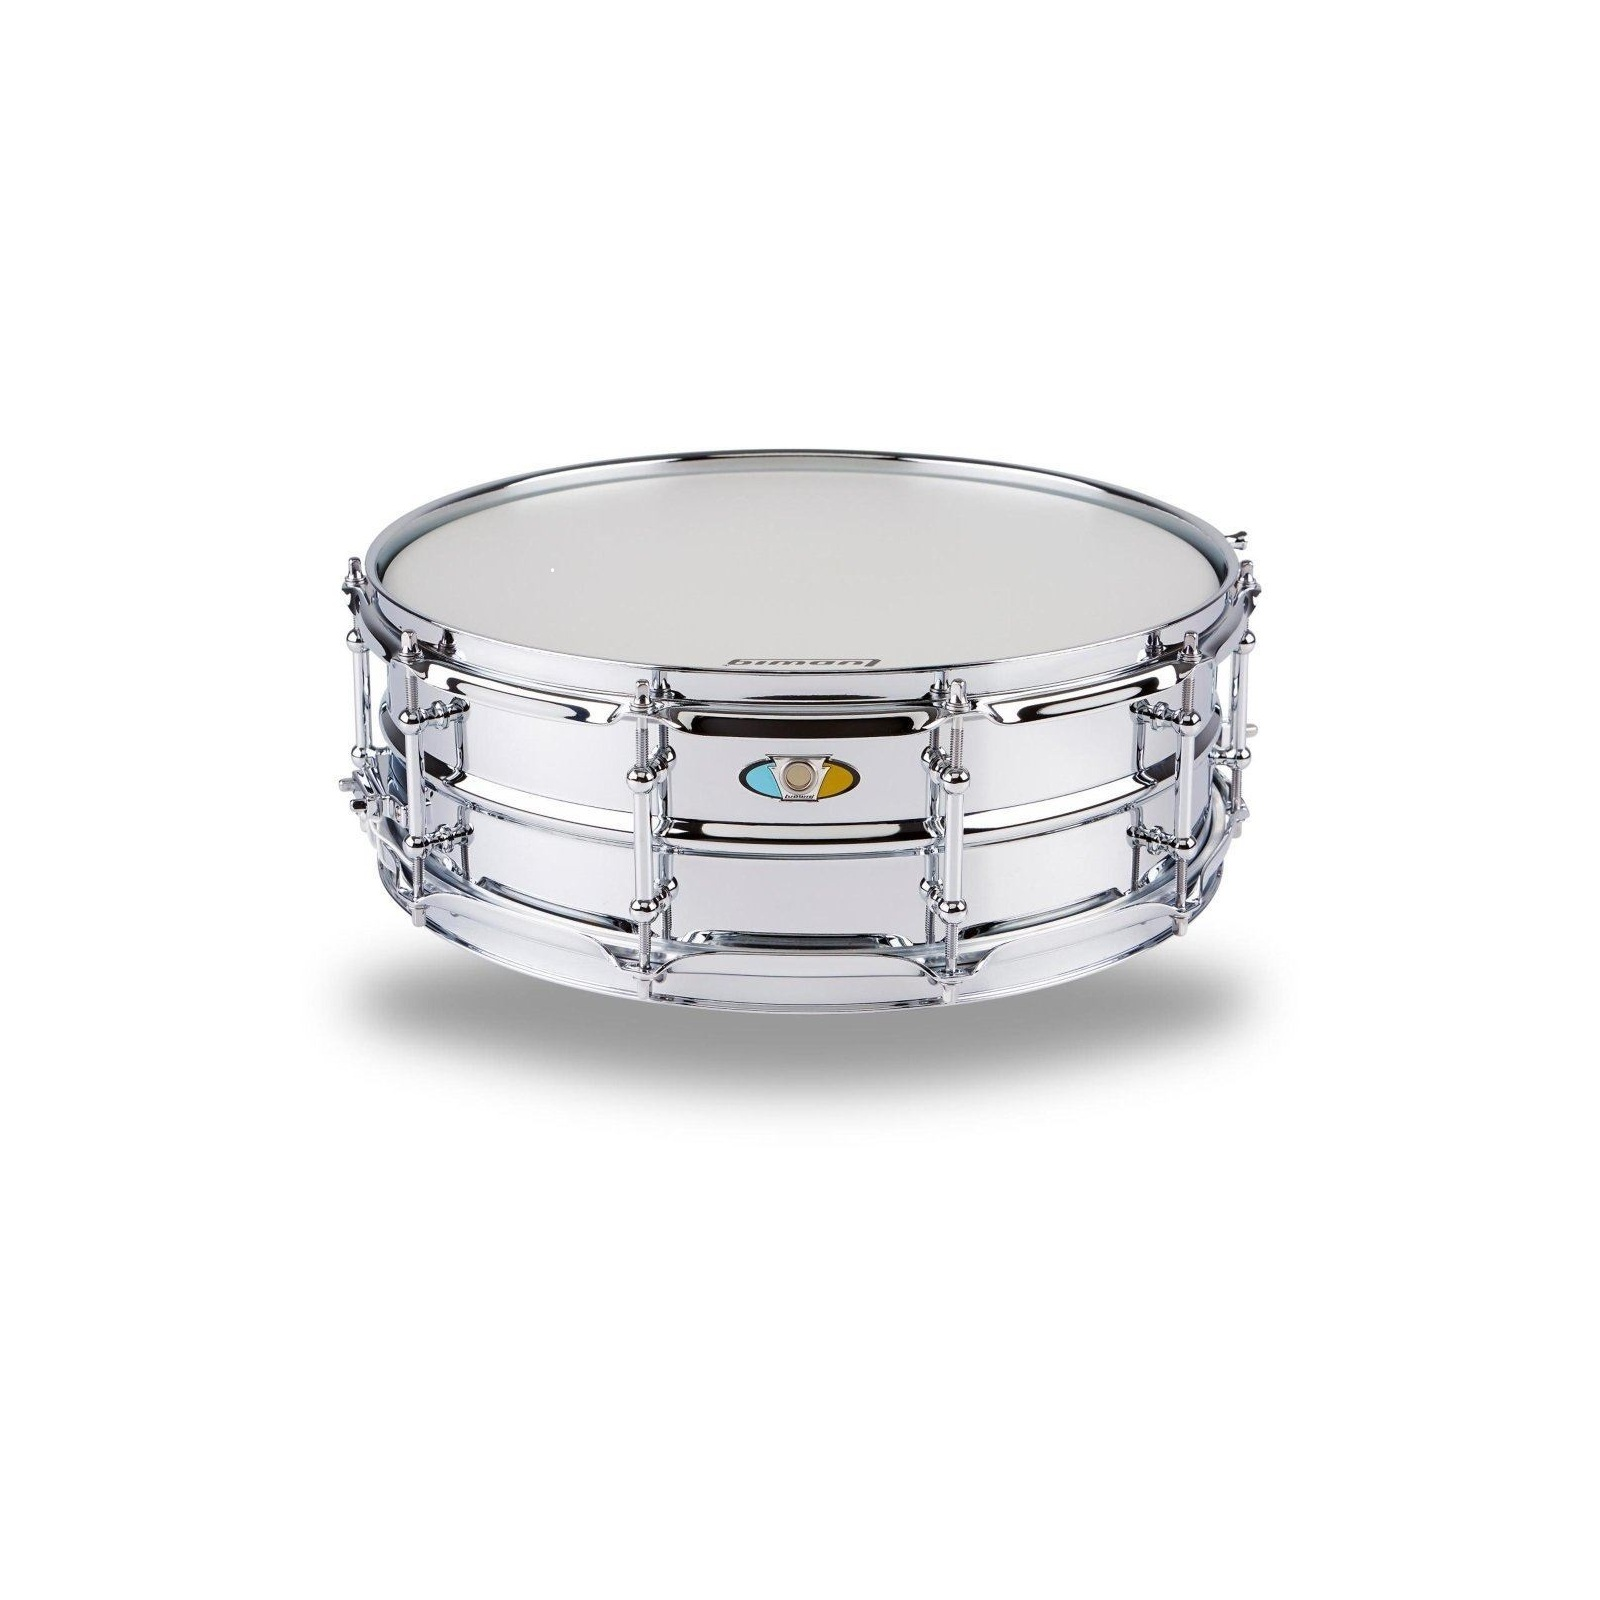 LUDWIG SUPRALITE STEEL SNARE 5 X 15